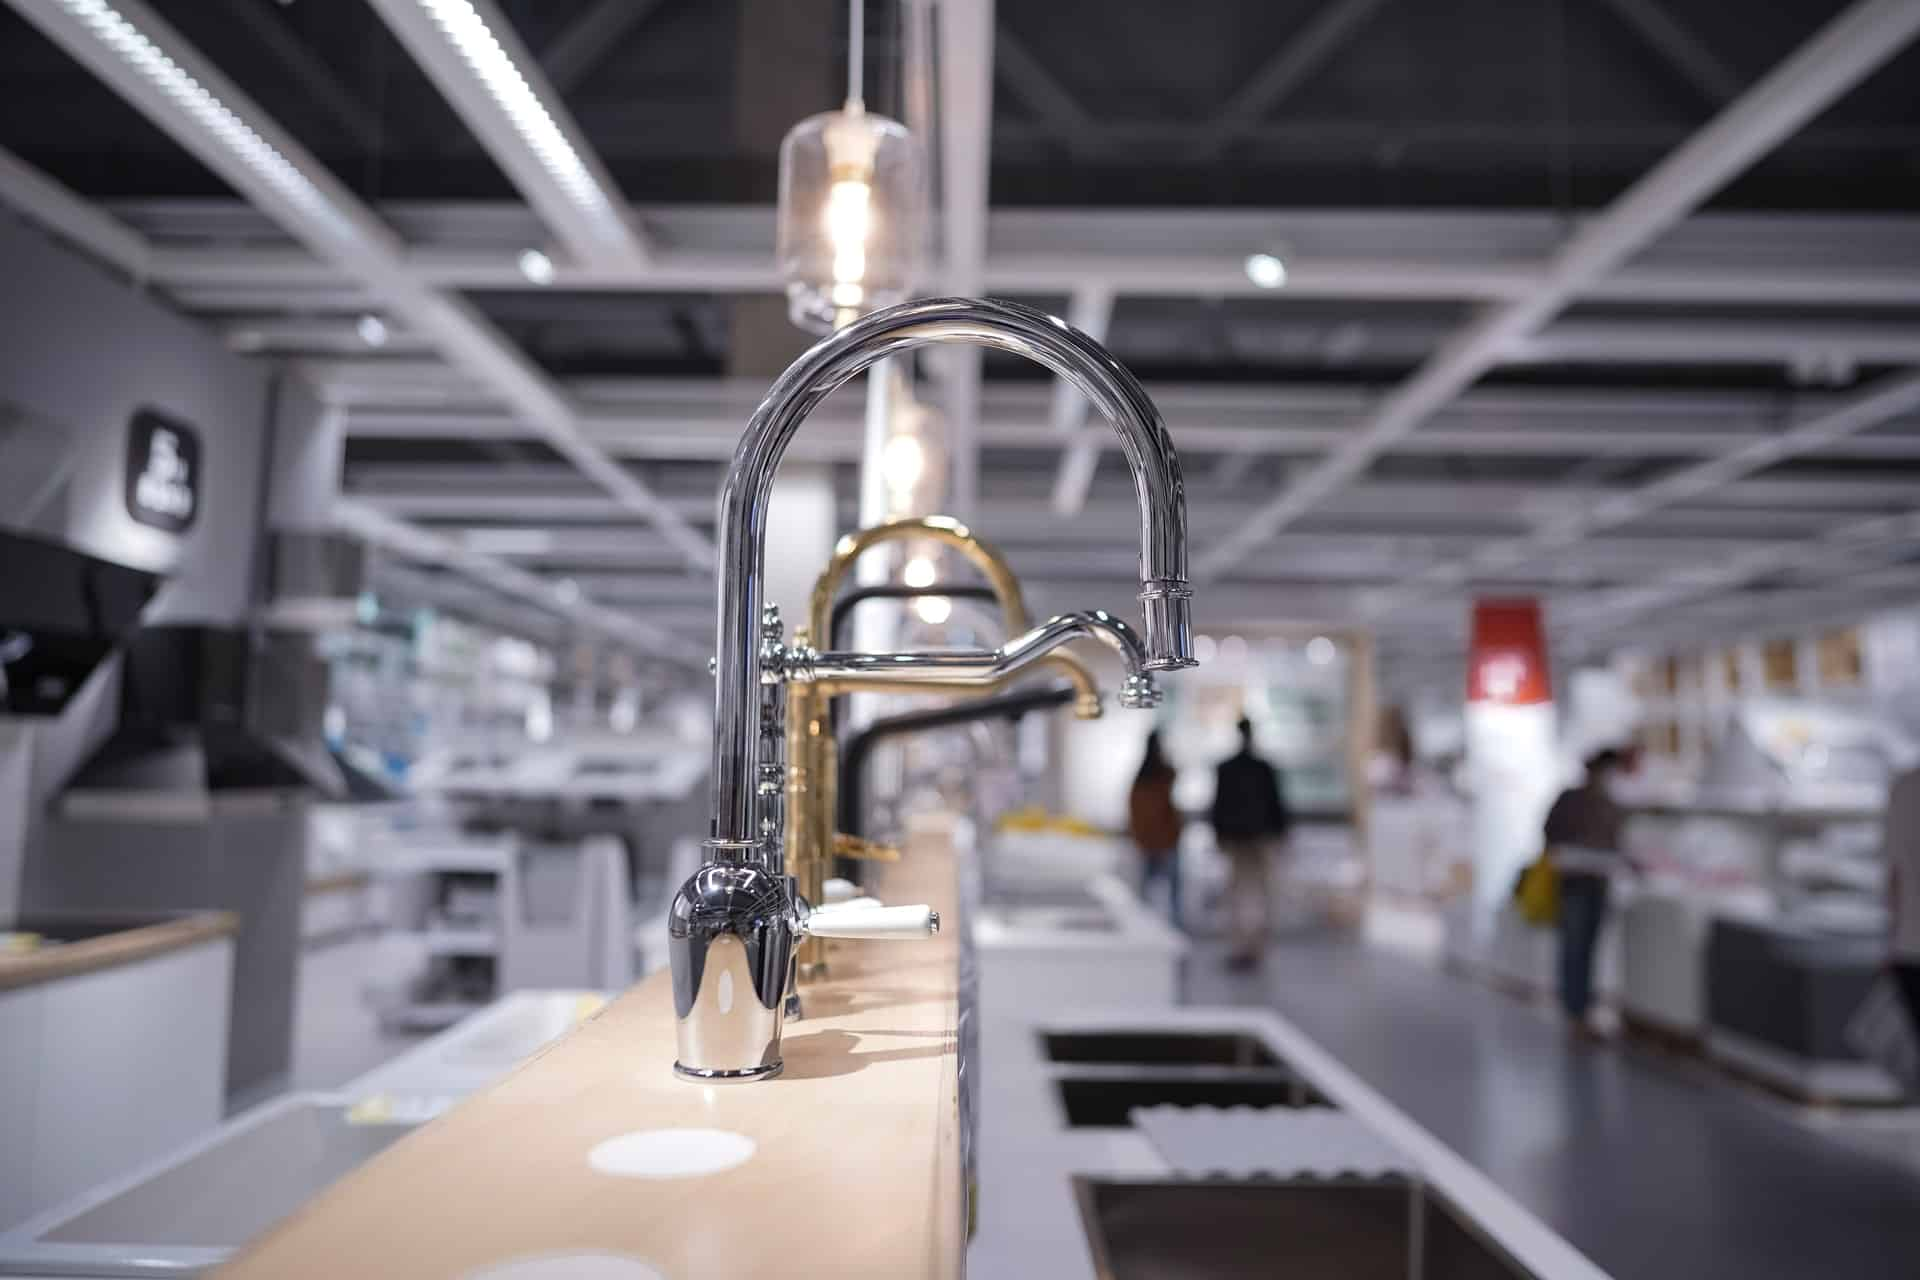 Four types of affordable kitchen faucets in a warehouse